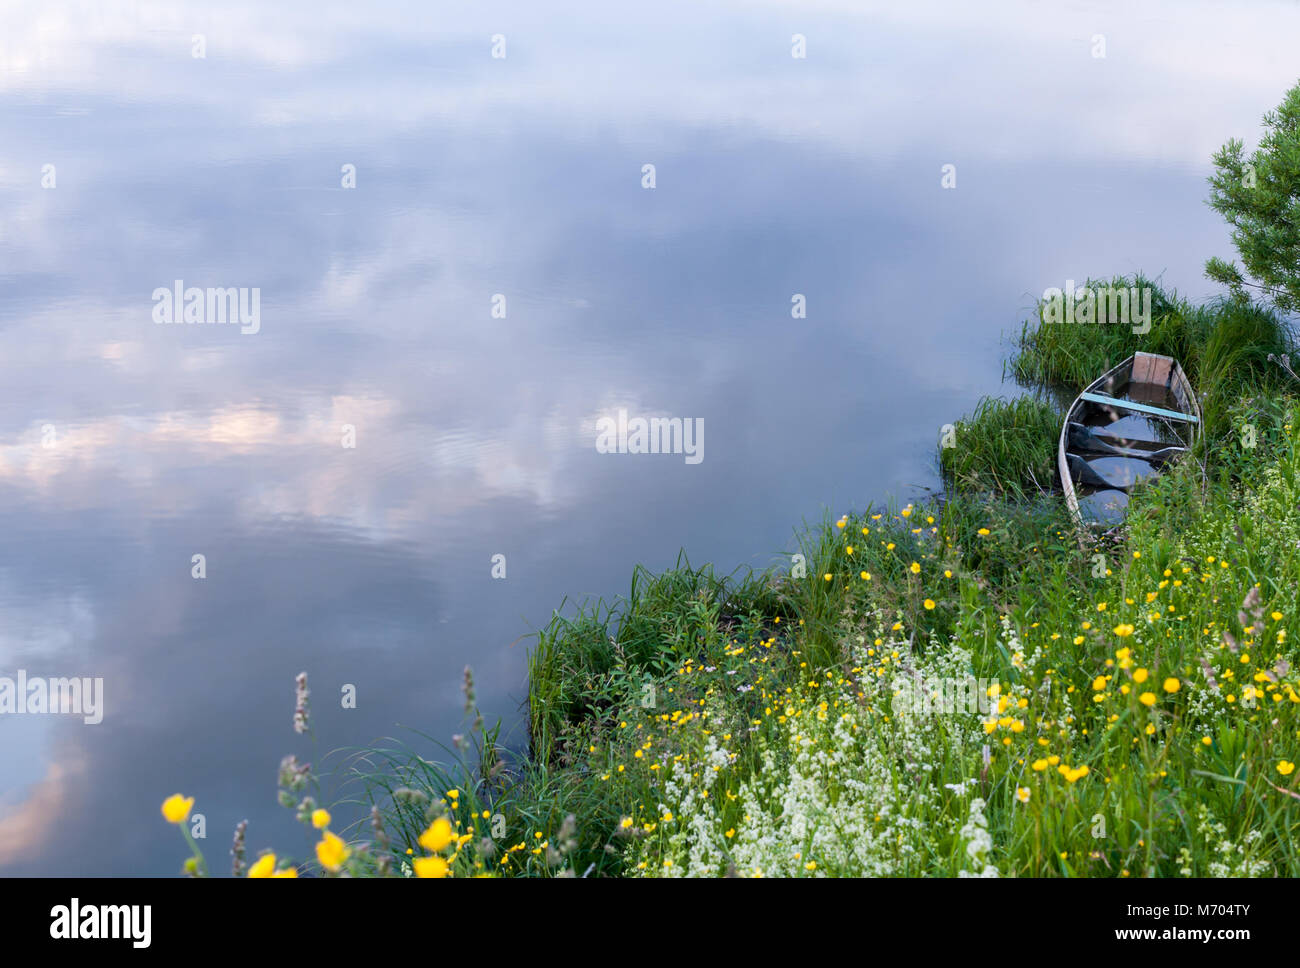 Abandoned flooded boat in the grass on the river shore. - Stock Image